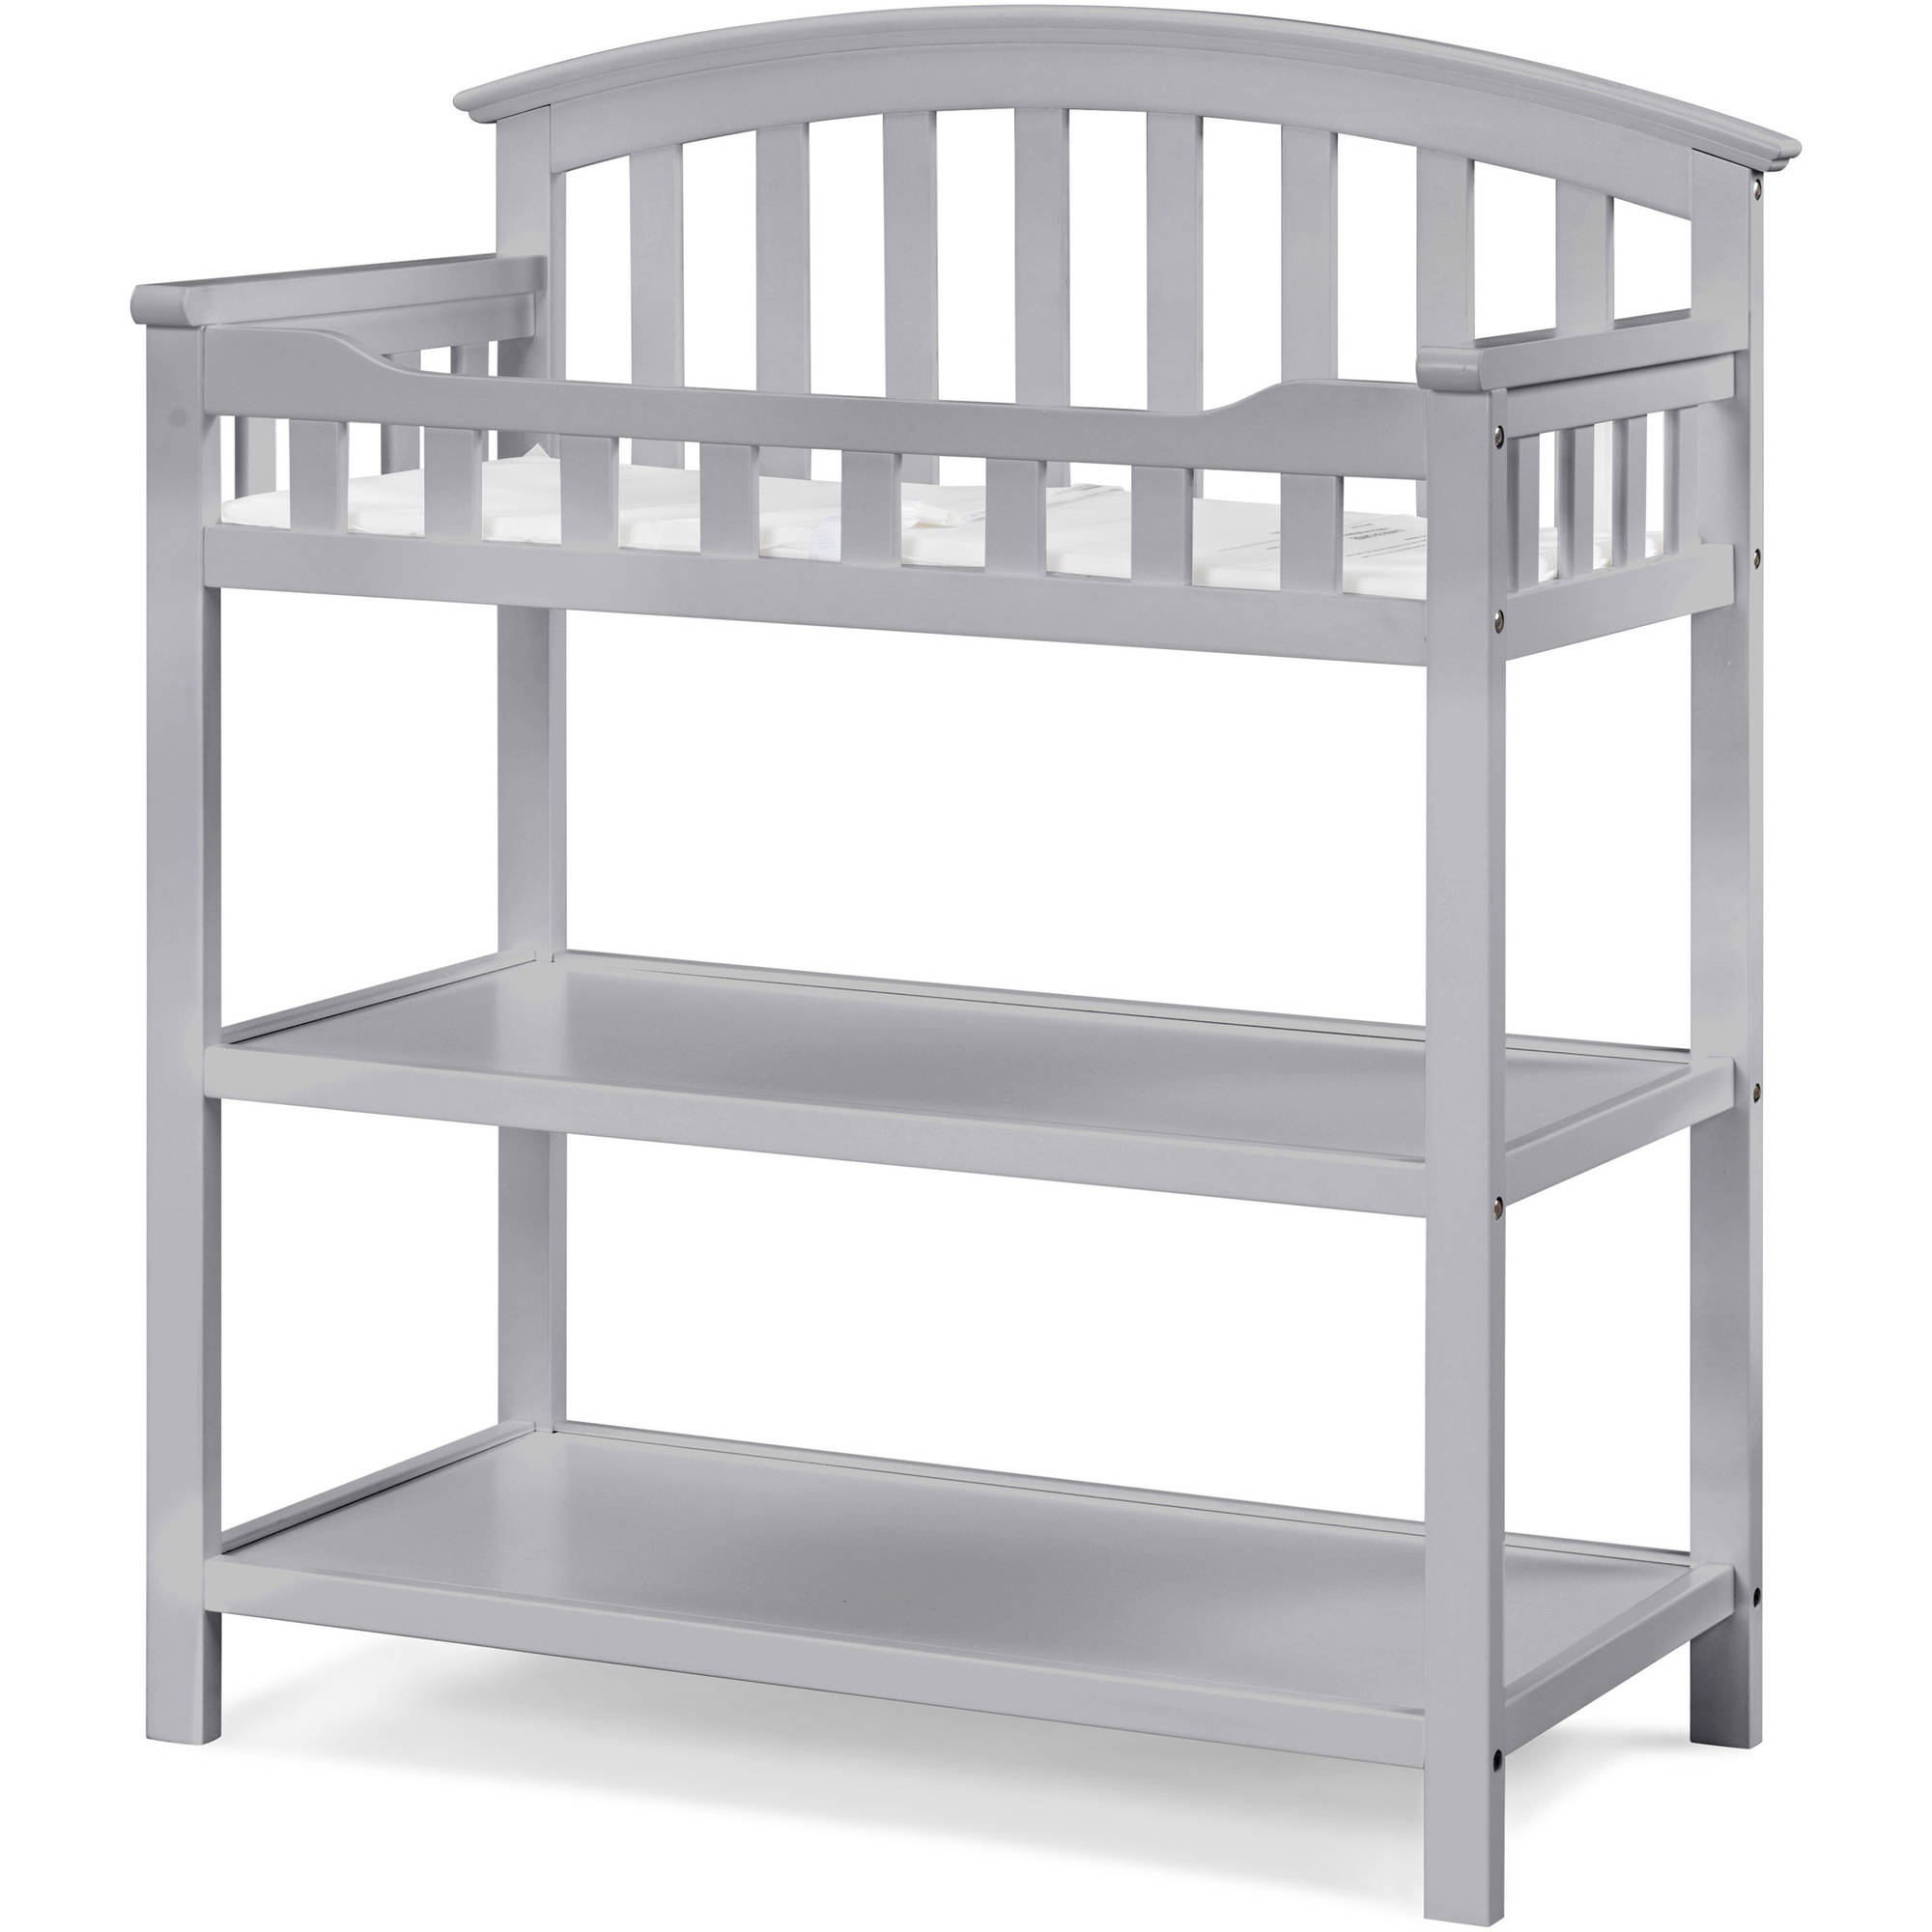 Graco Changing Table, Choose Your Finish